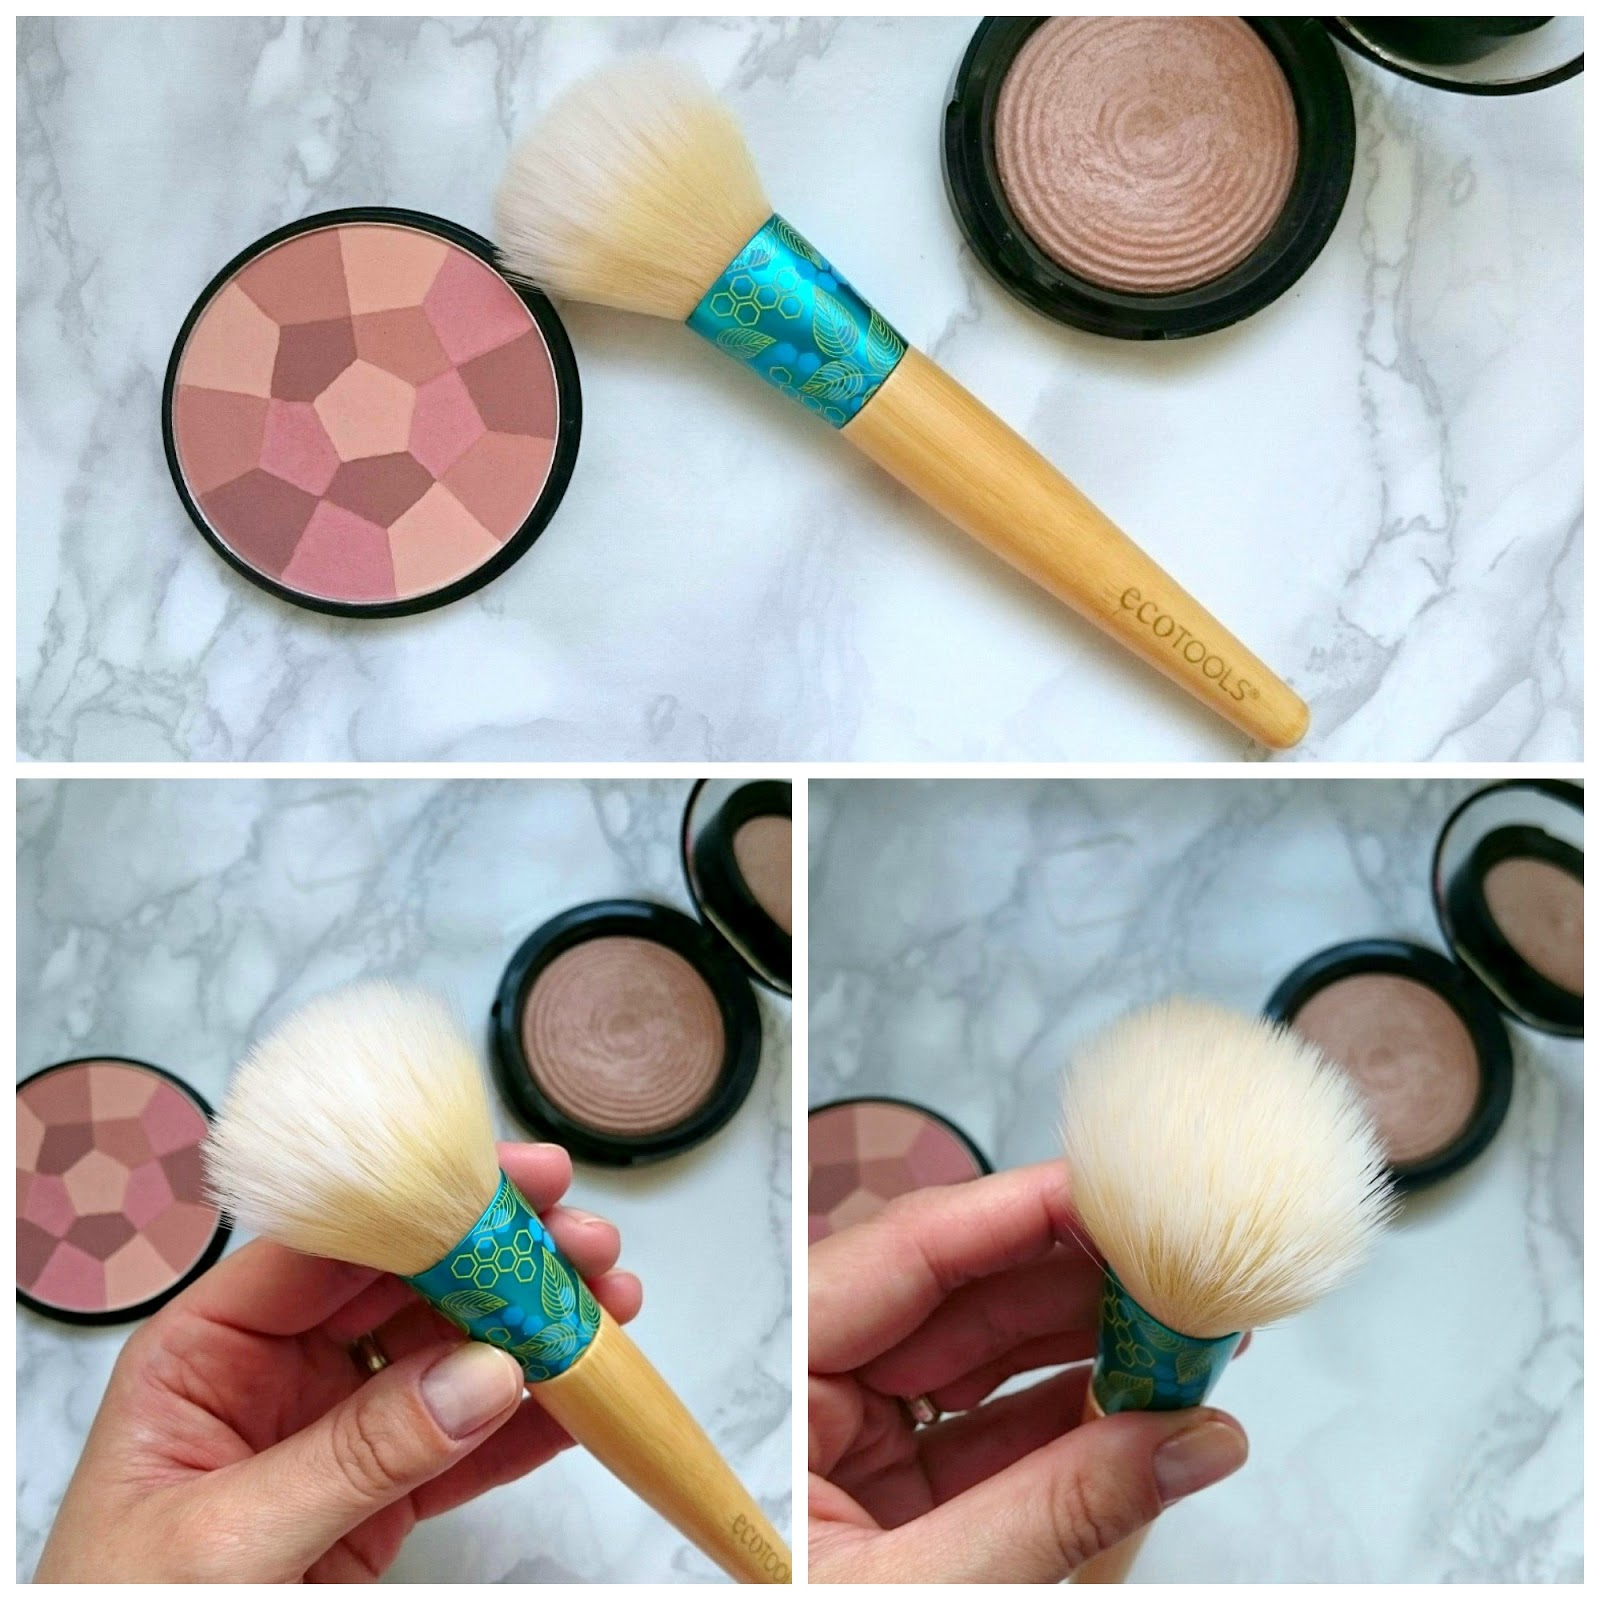 Ecotools Mattifying Finish brush